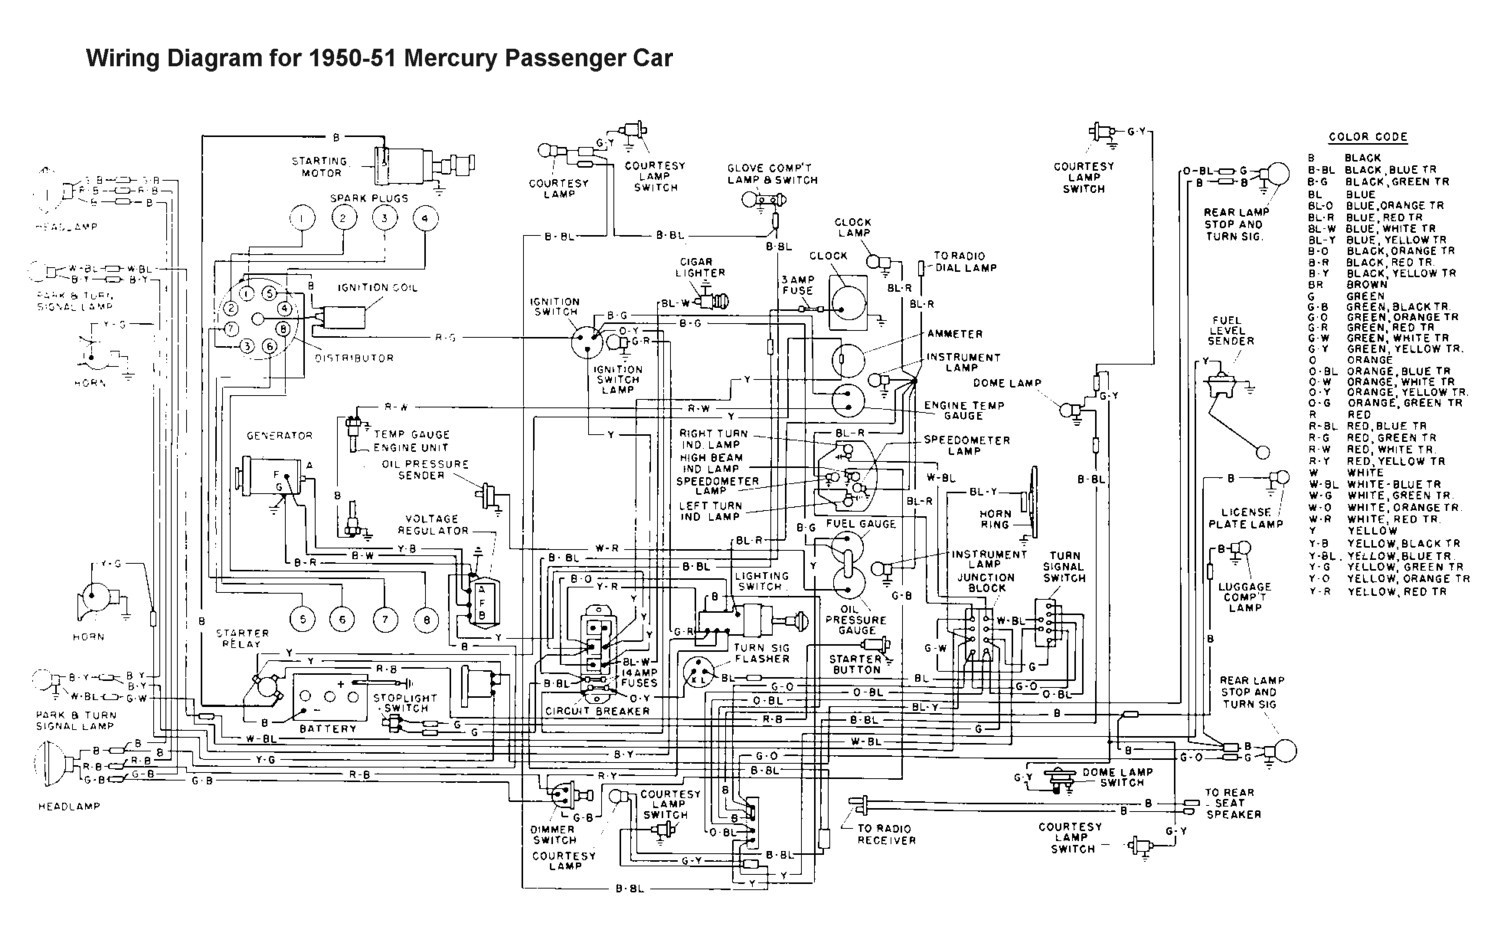 1953 ford wiring diagram schematic diagram48 ford f1 wiring diagram online wiring diagram dataflathead electrical wiring diagramswiring for 1950 51 mercury